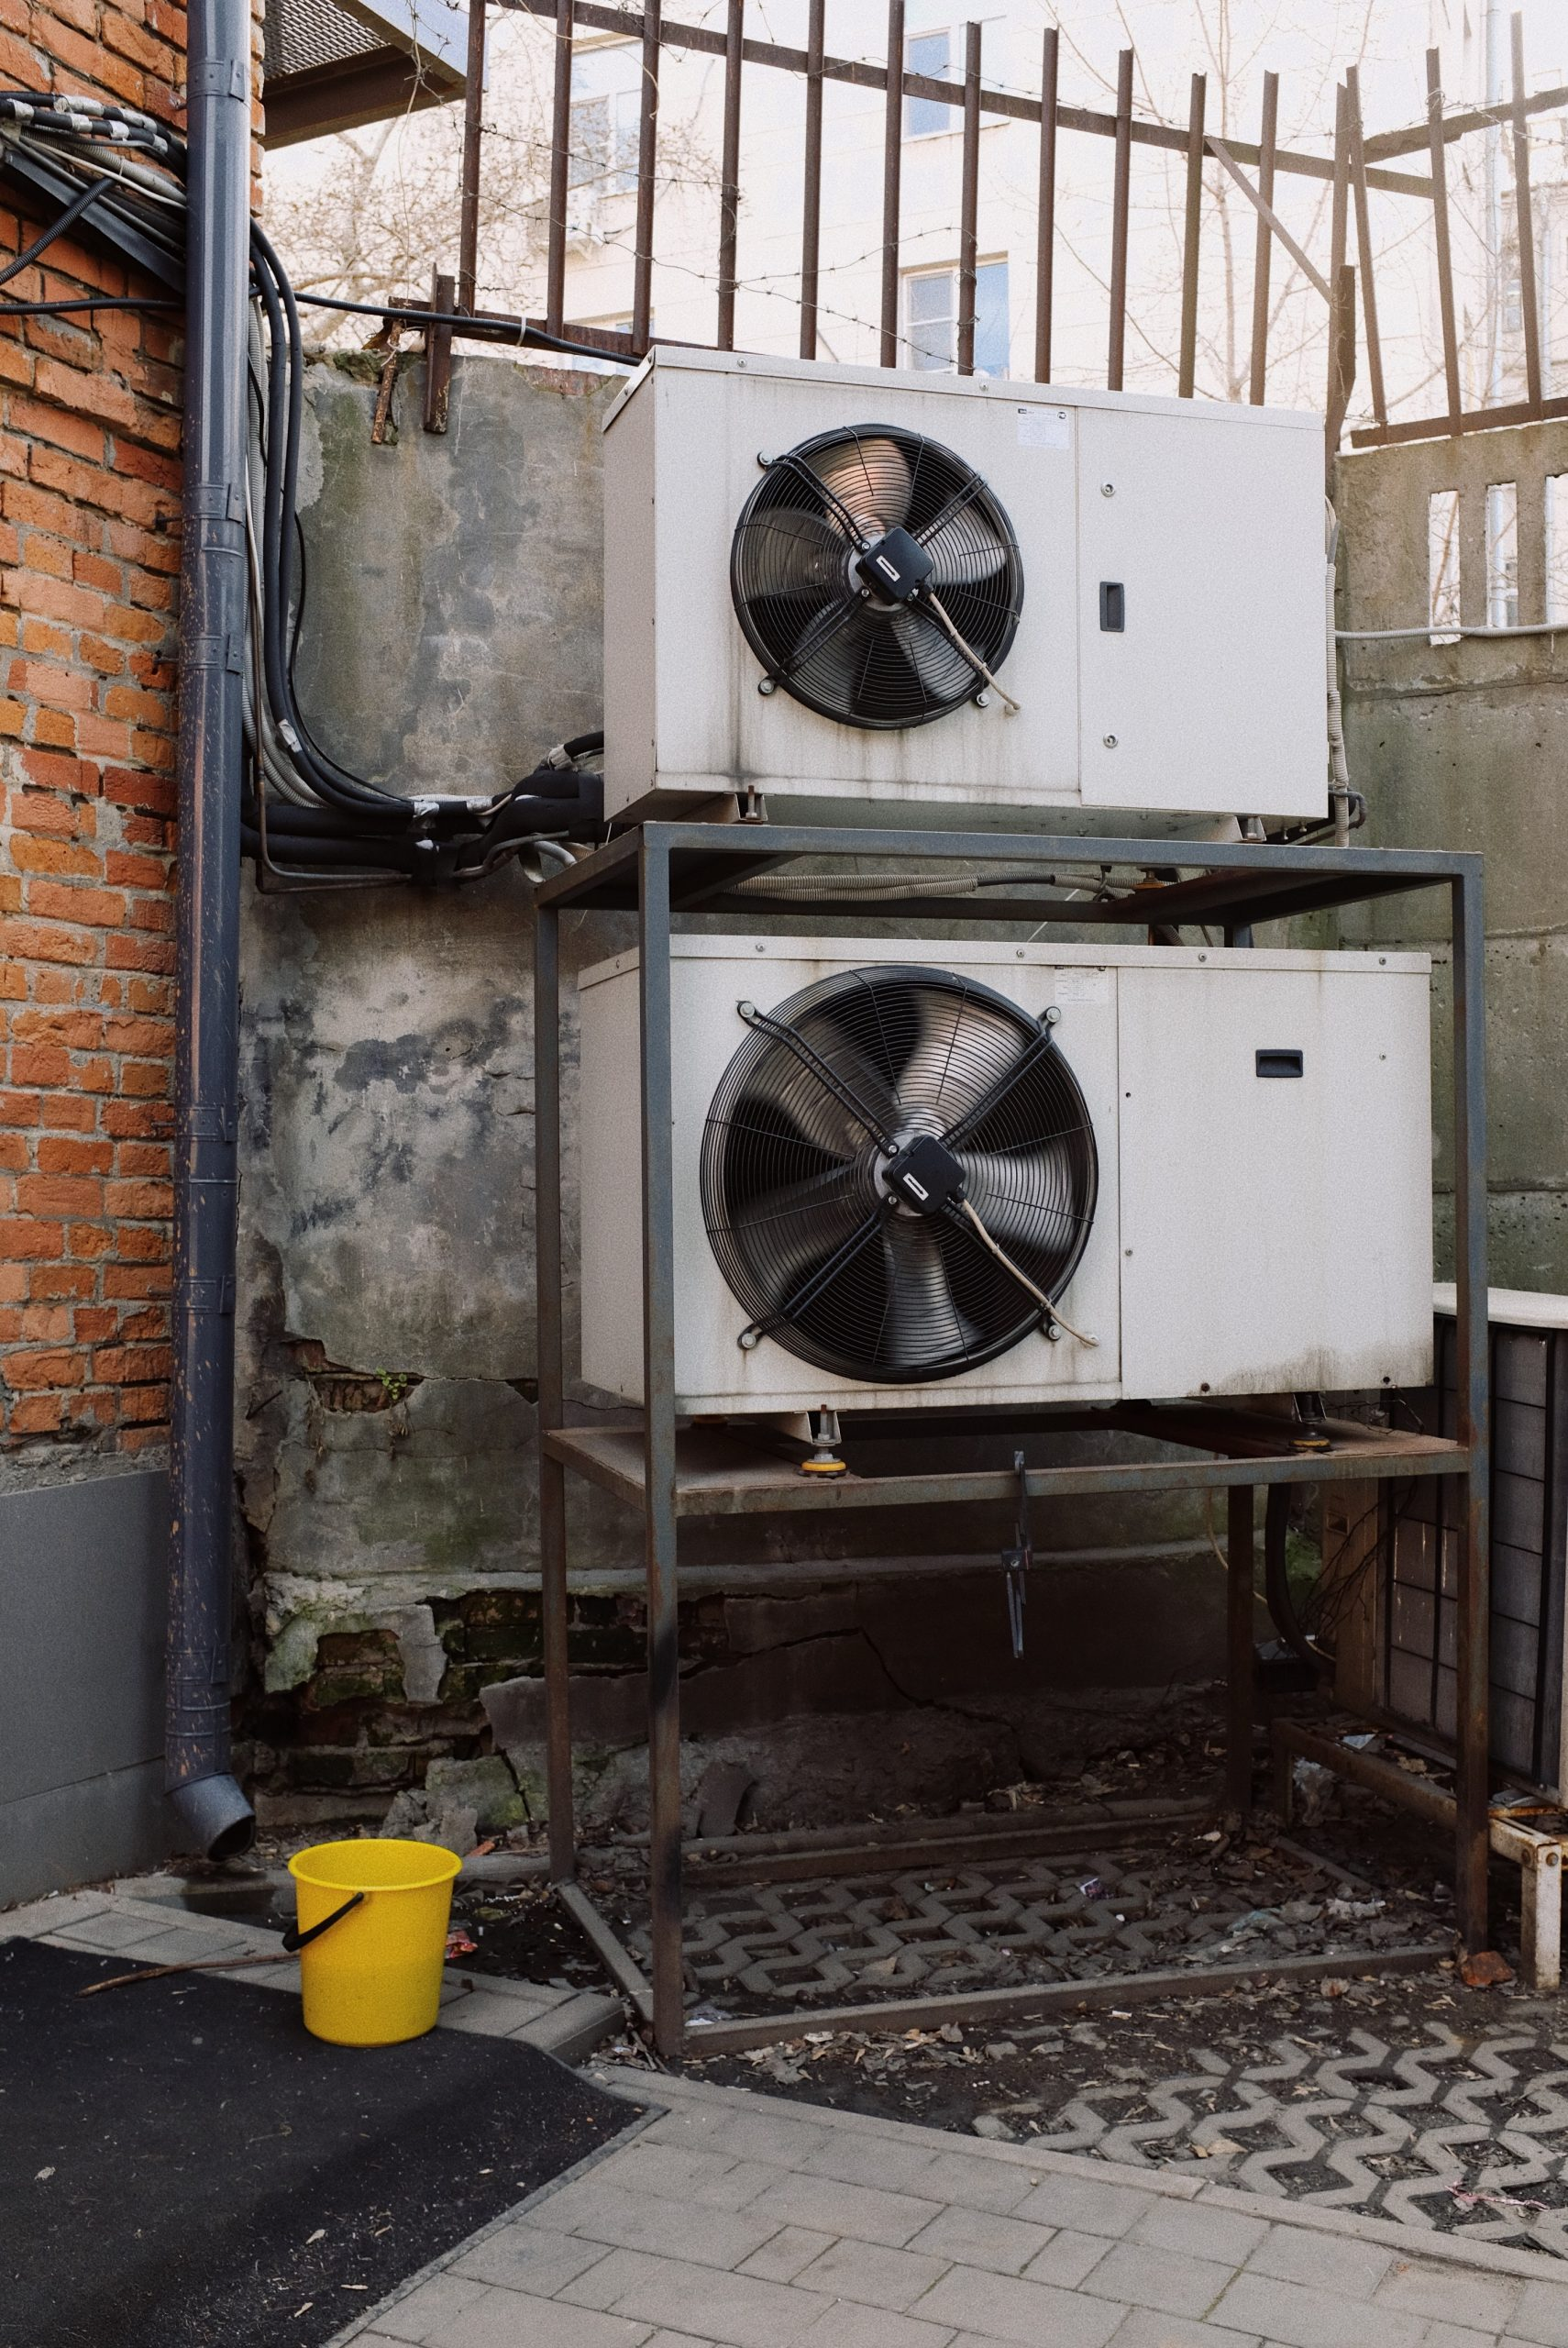 How To Install Central Air Conditioning Yourself